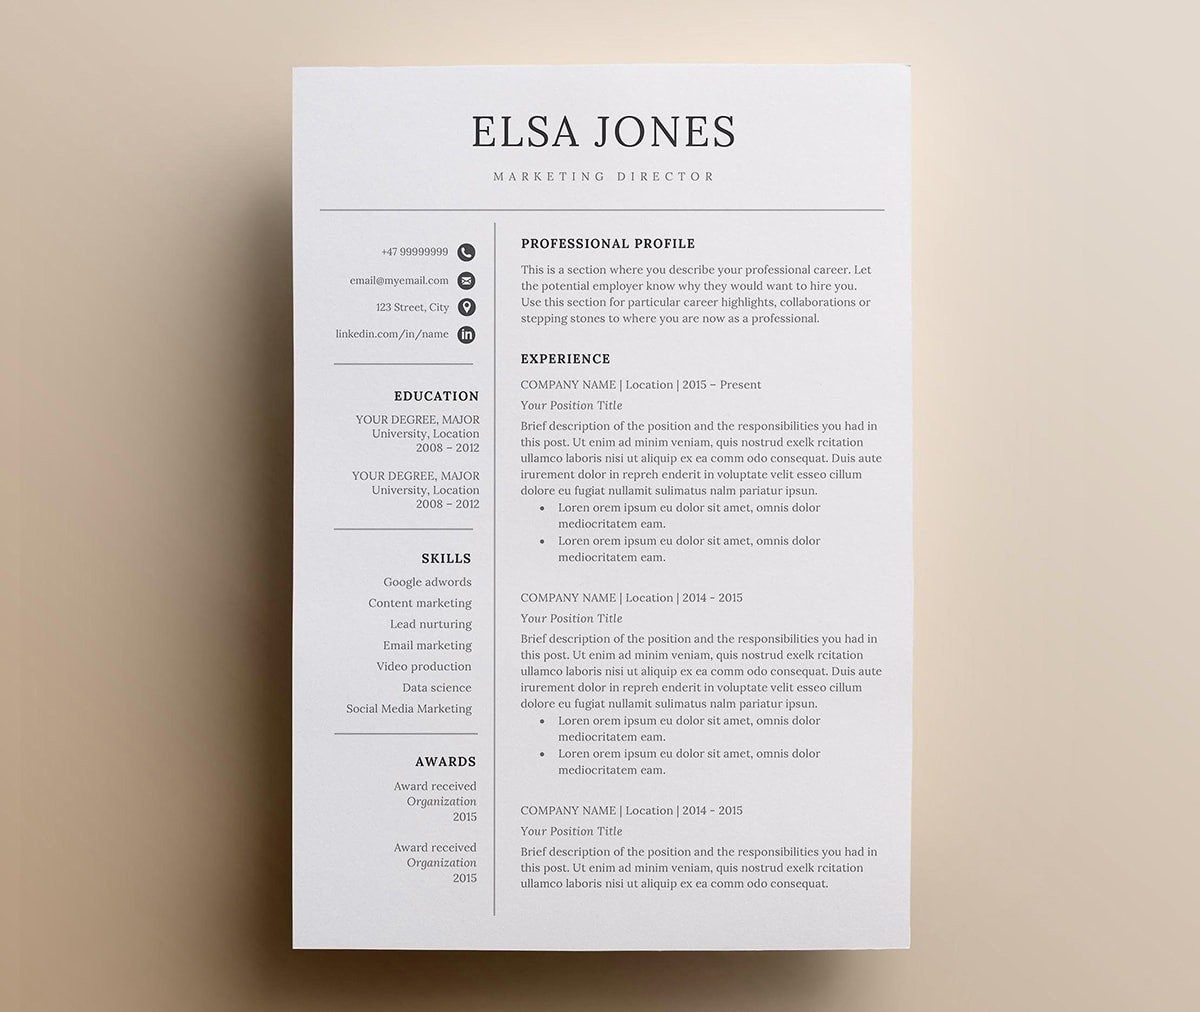 clean minimalist resume templates sleek design office work objective for government job Resume Resume Minimalist Design